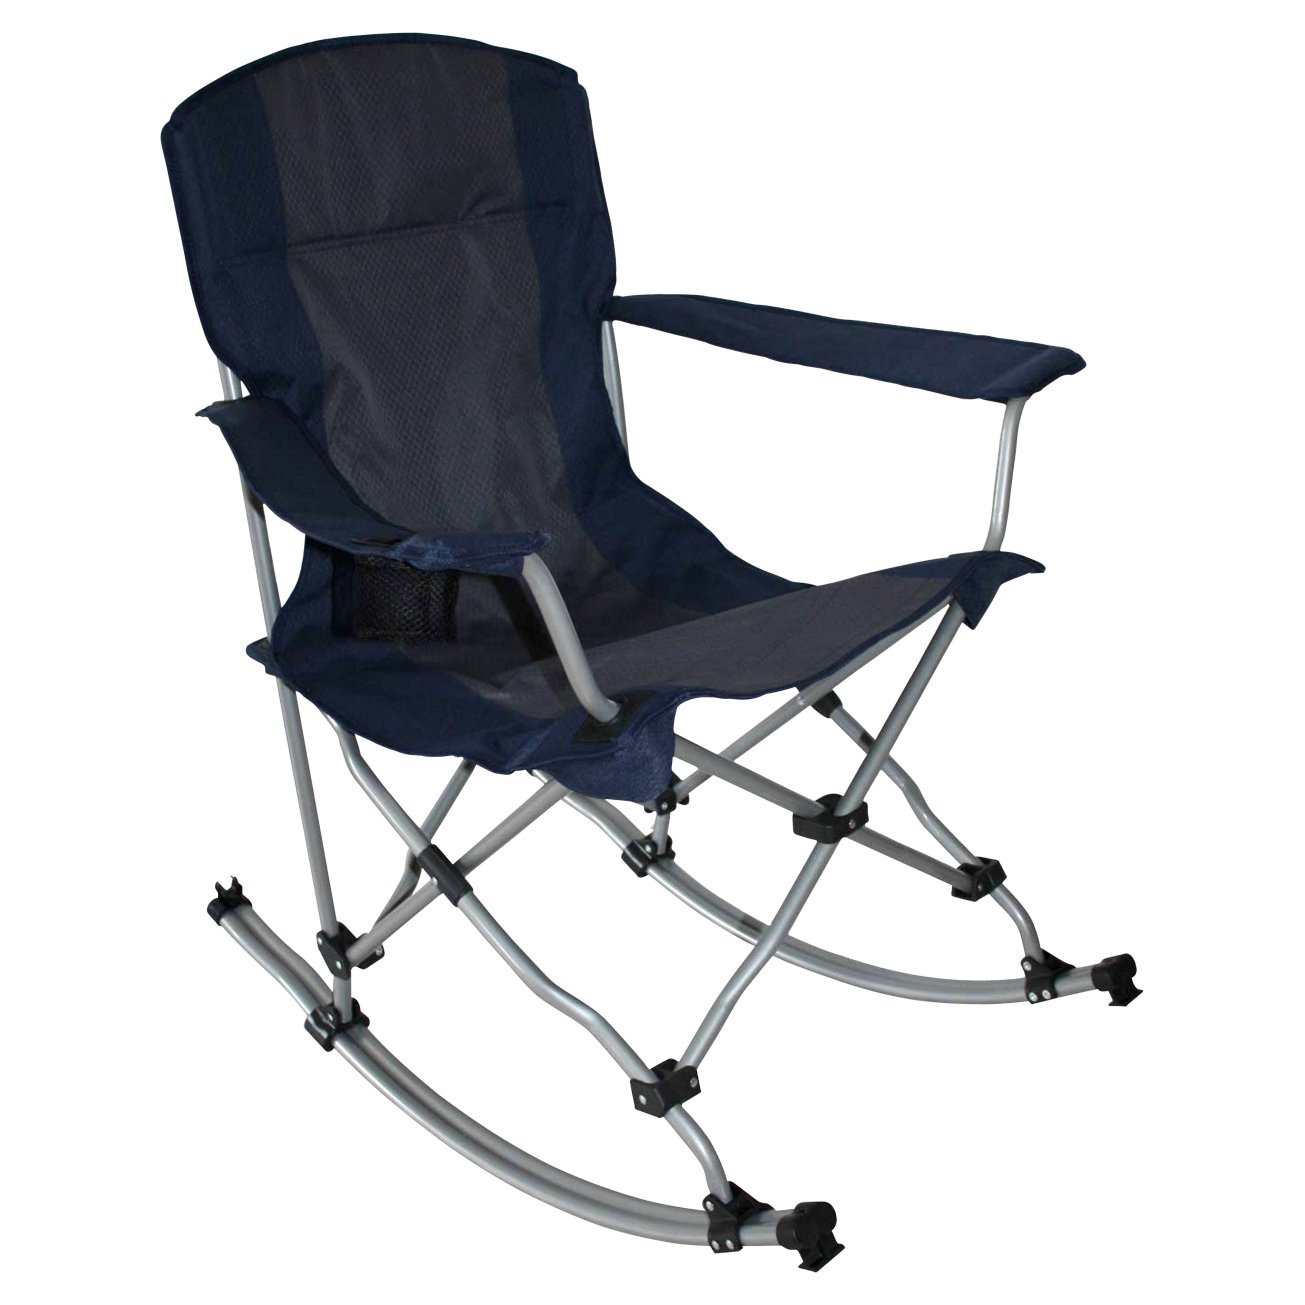 bore furniture astonishing outdoor folding rocking chair for